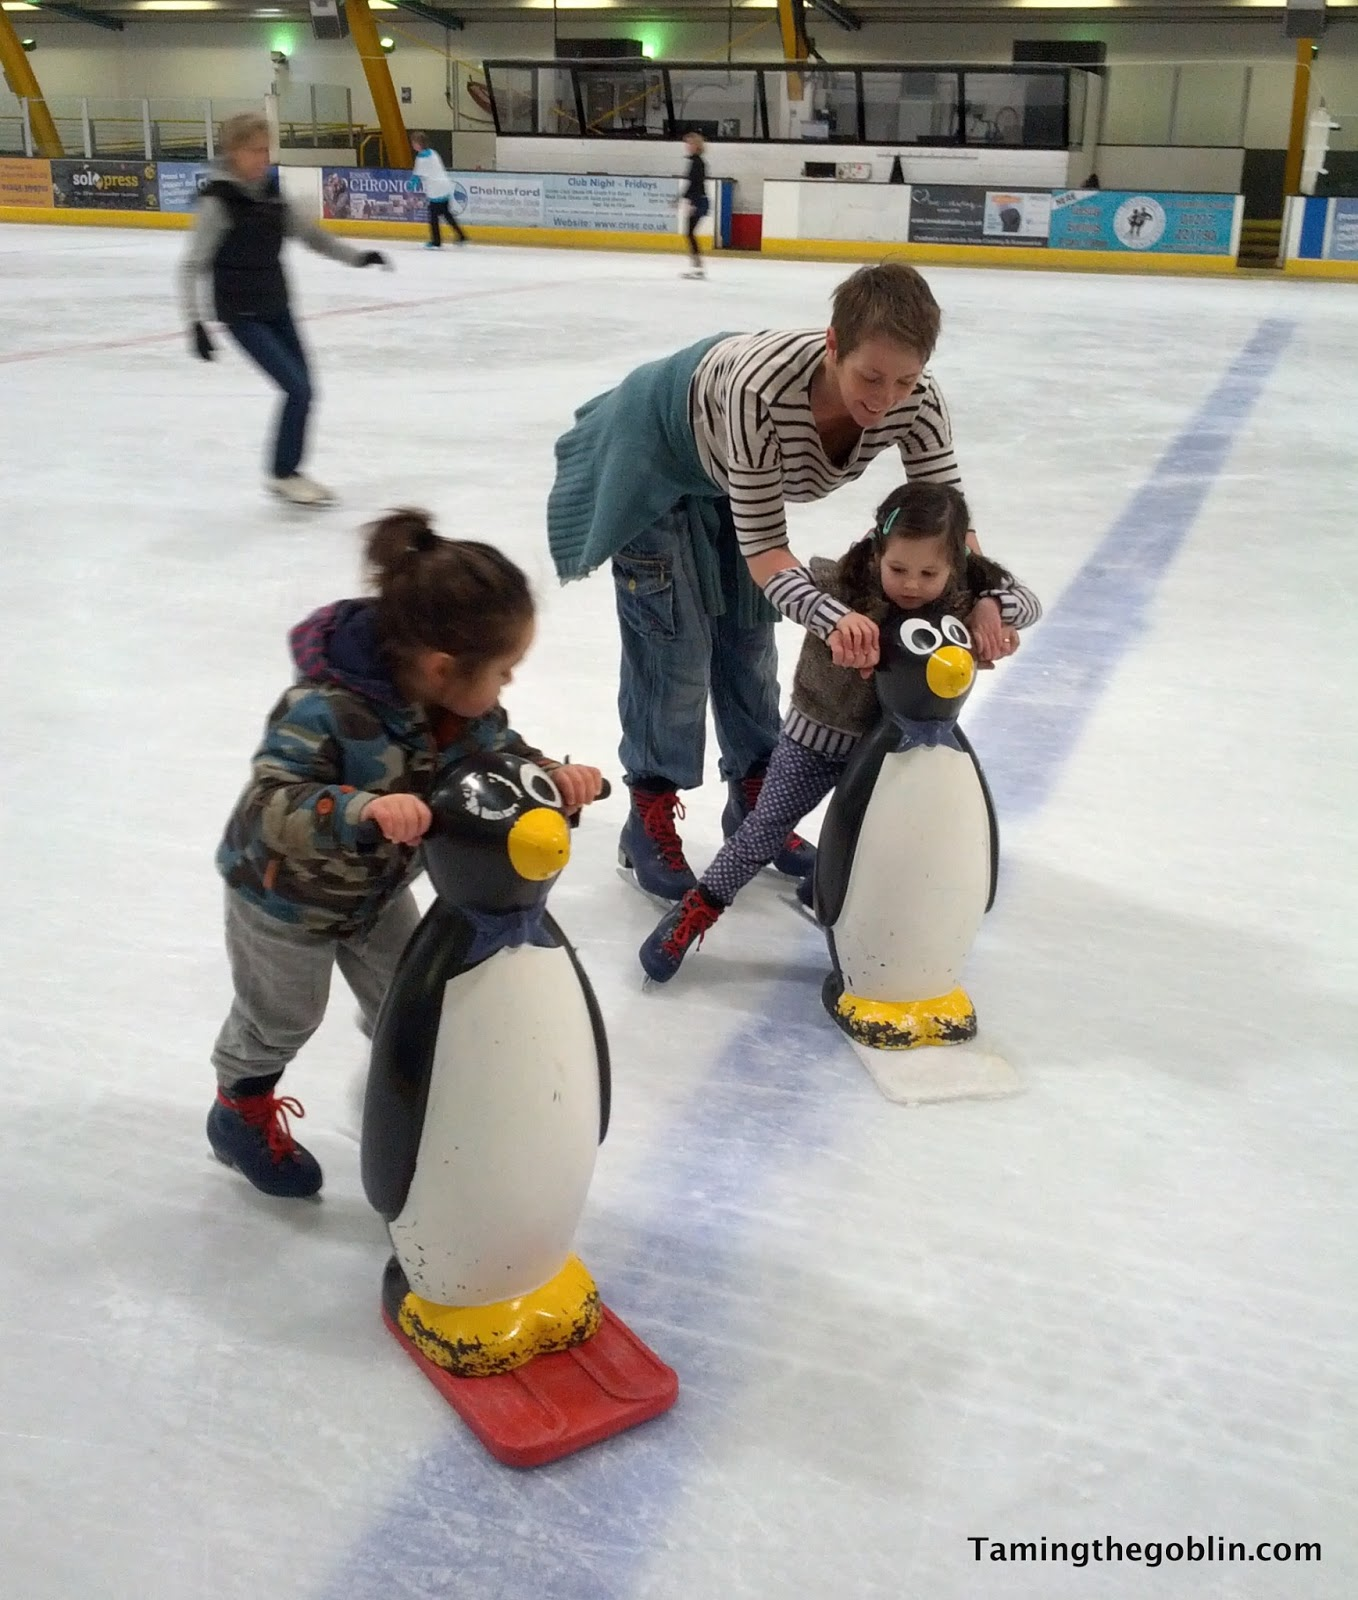 I Took Goblin Iceskating With His Friends The Other Week I Have To Admit I  Wasn't Sure How He'd Be Despite Being Quite A Physical Child It's Hard To